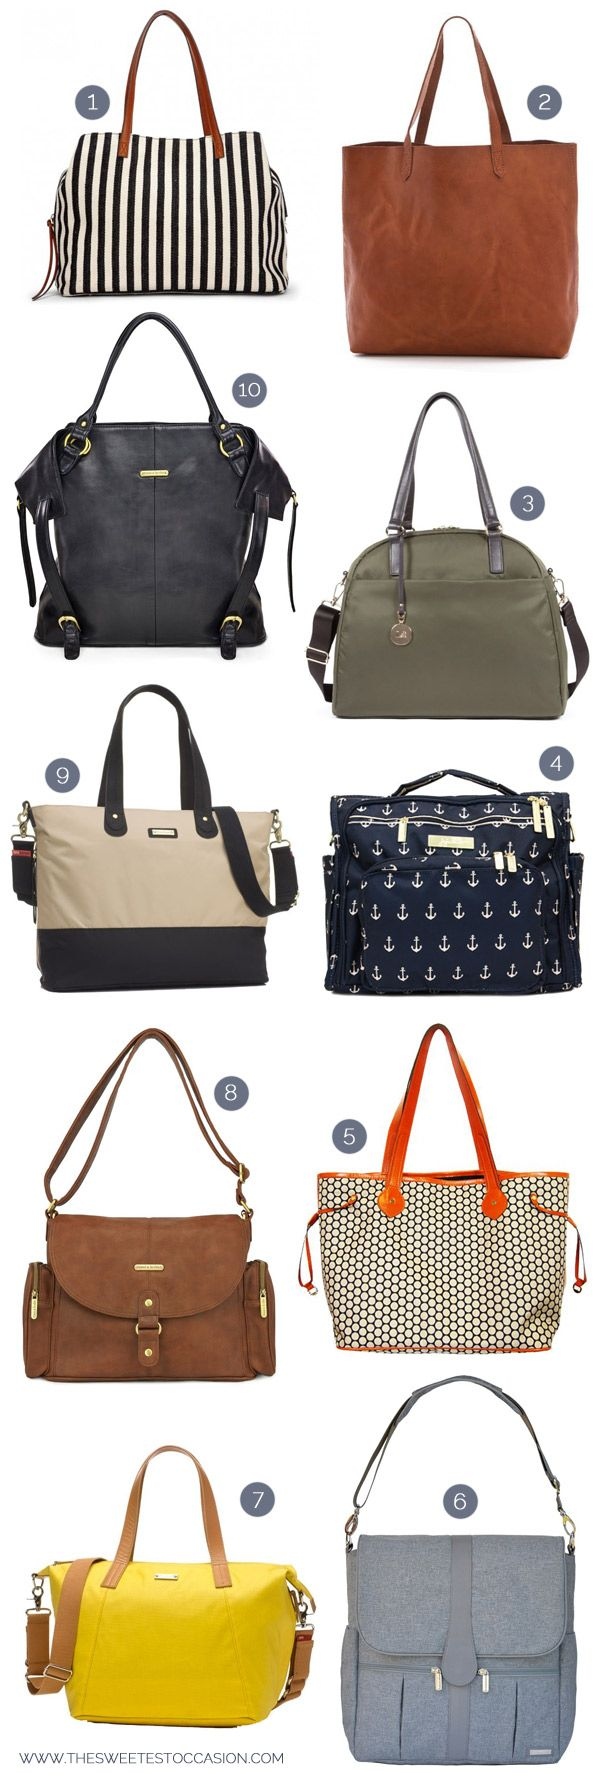 10 Super Stylish Diaper Bags by Cyd Converse | The Sweetest Occasion